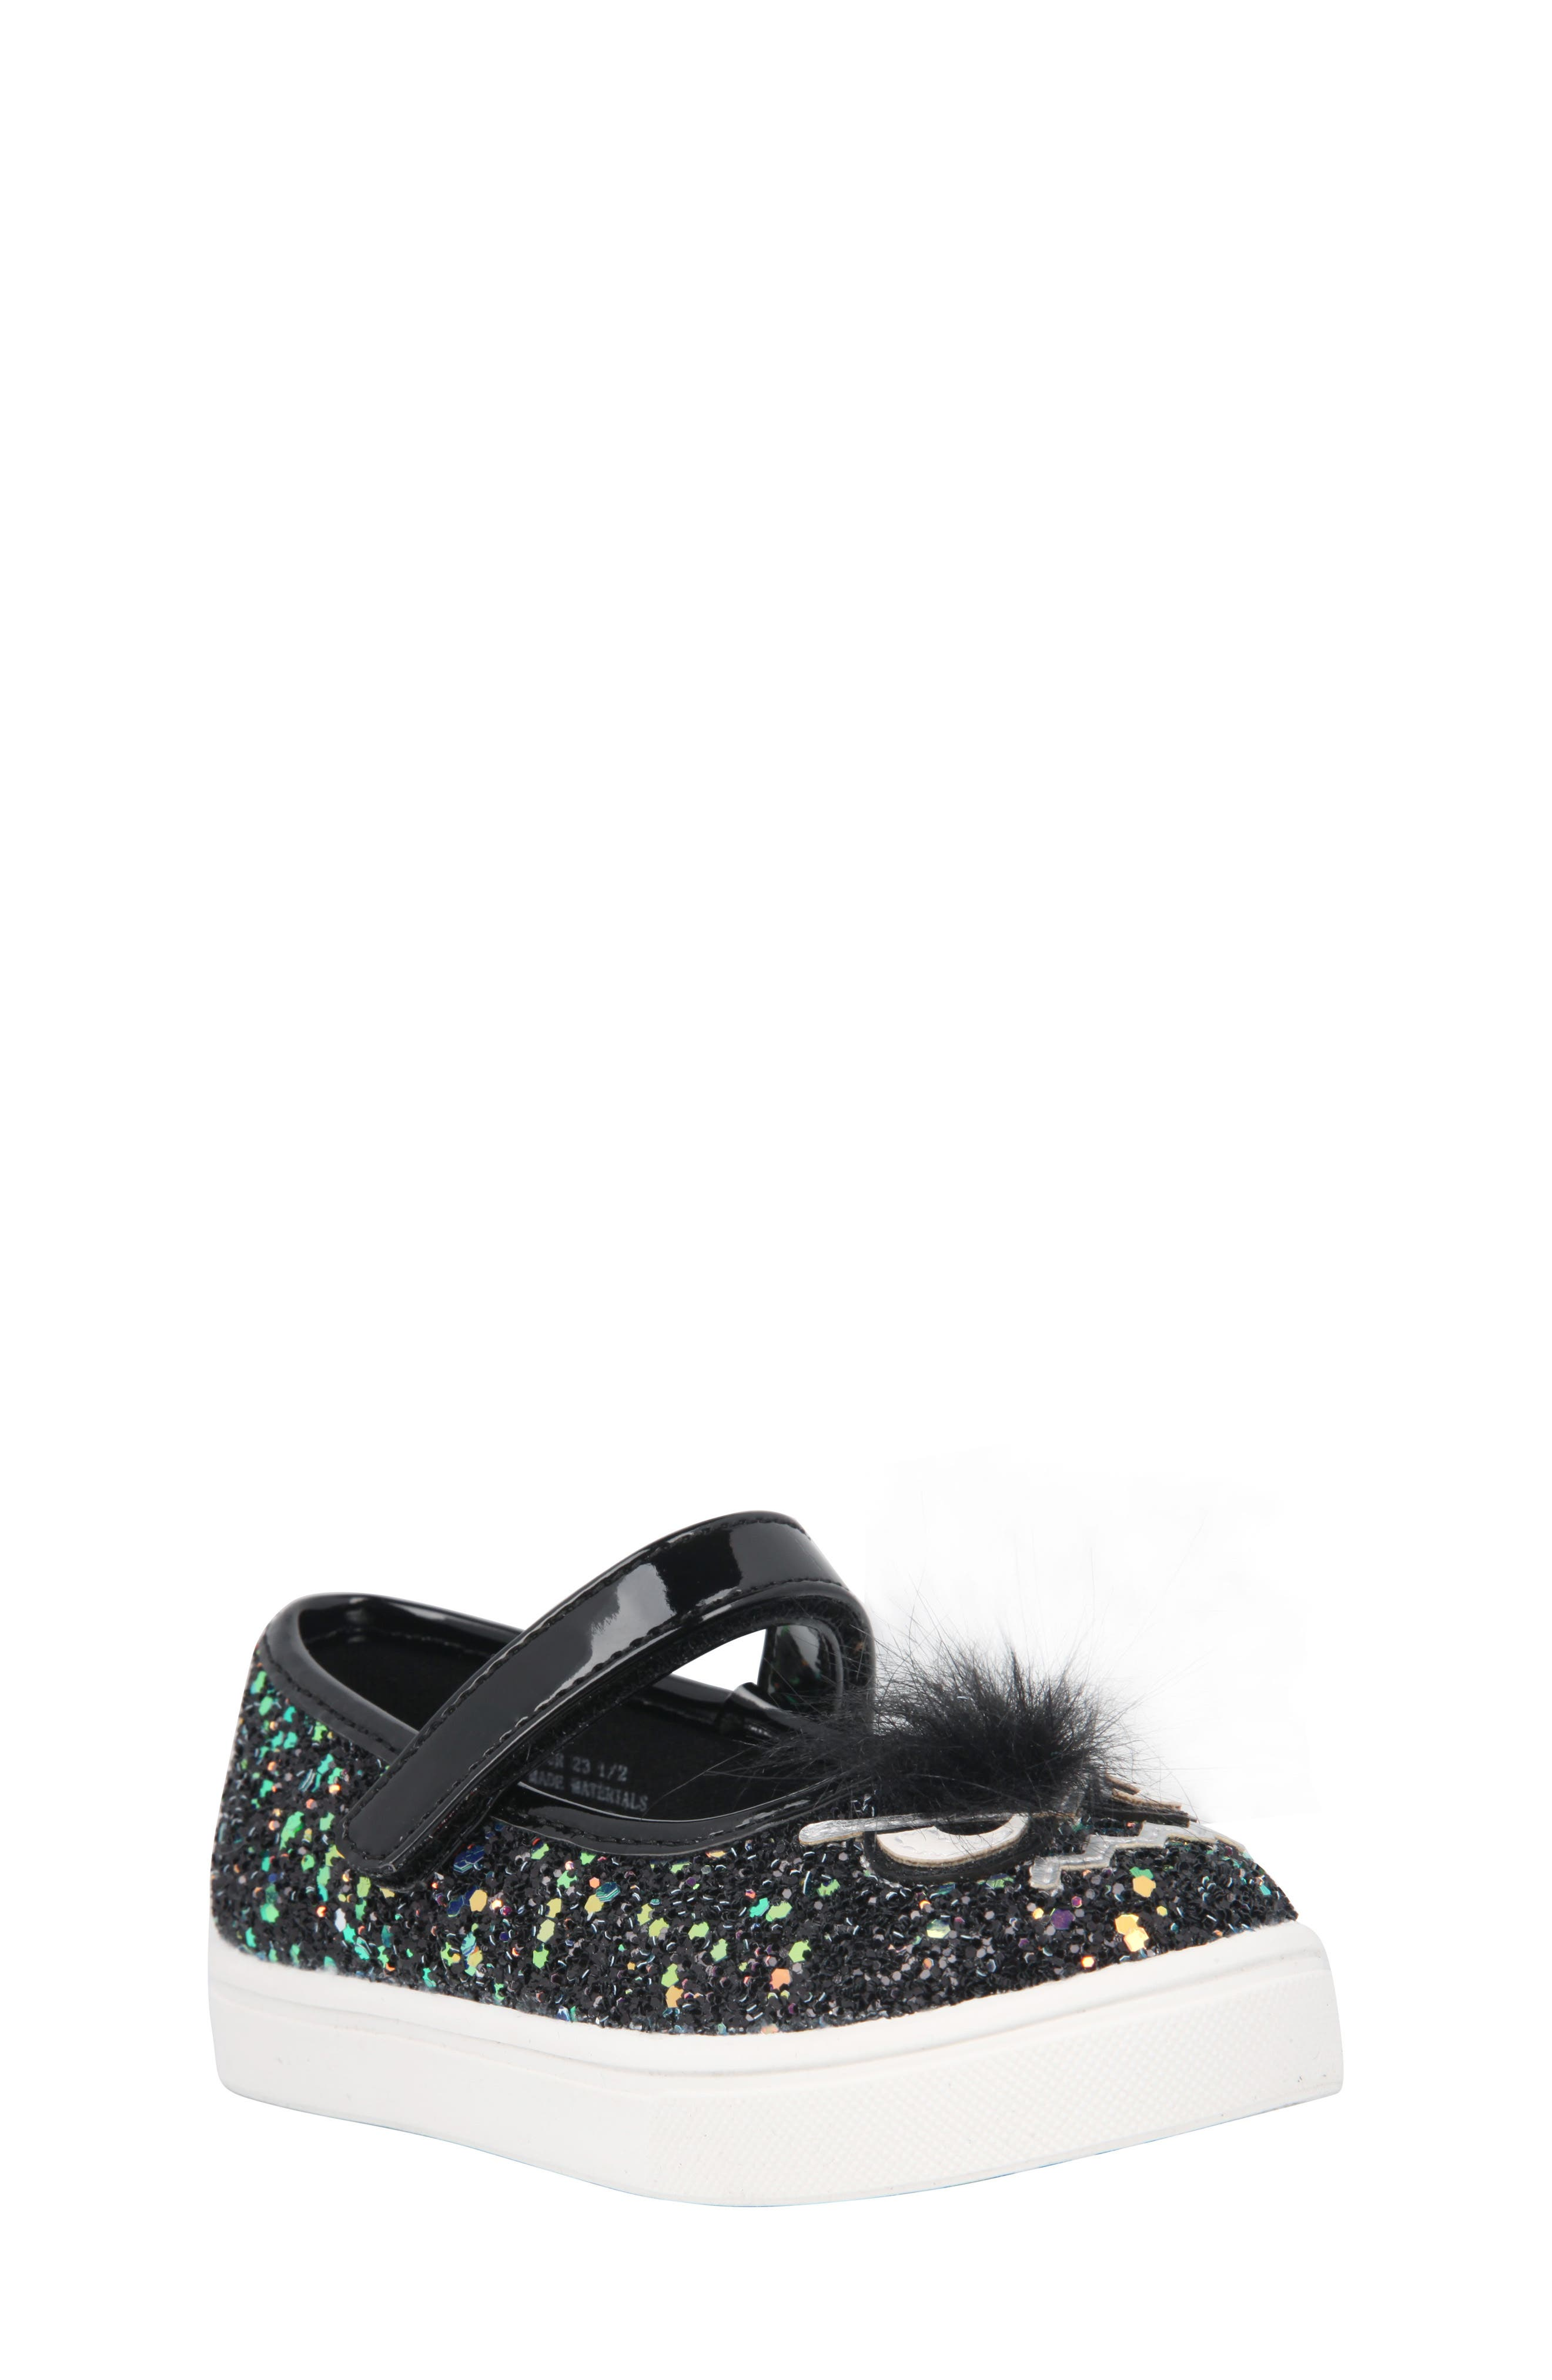 Alyx Faux Fur Glittery Mary Jane Sneaker,                         Main,                         color, Black Chunky Glitter